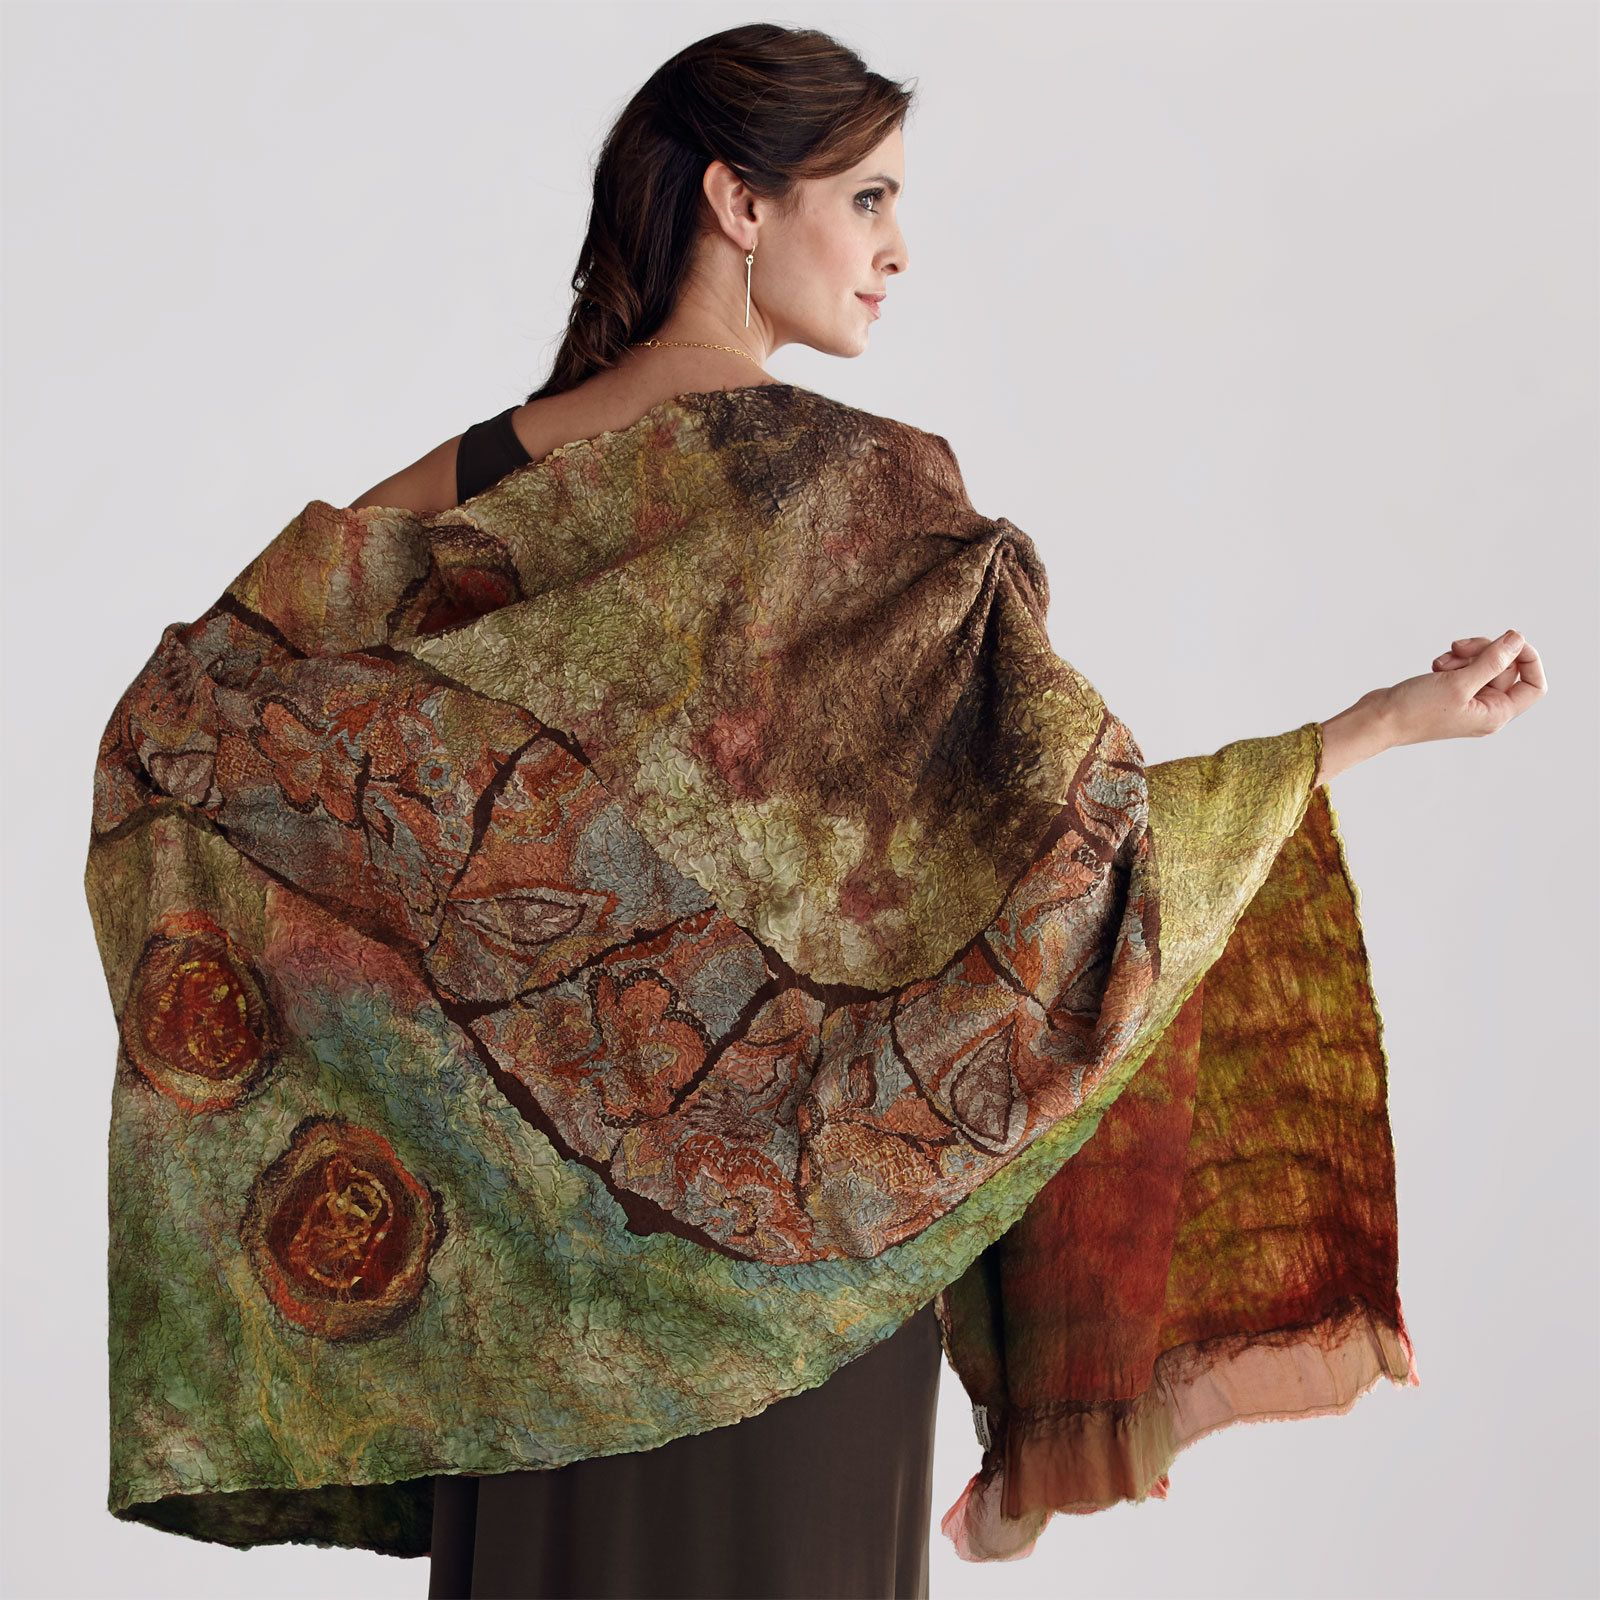 Nuno-felted Wrap in Orange, Olive & Browns by Anne Vincent (Wool Wrap) | Artful Home